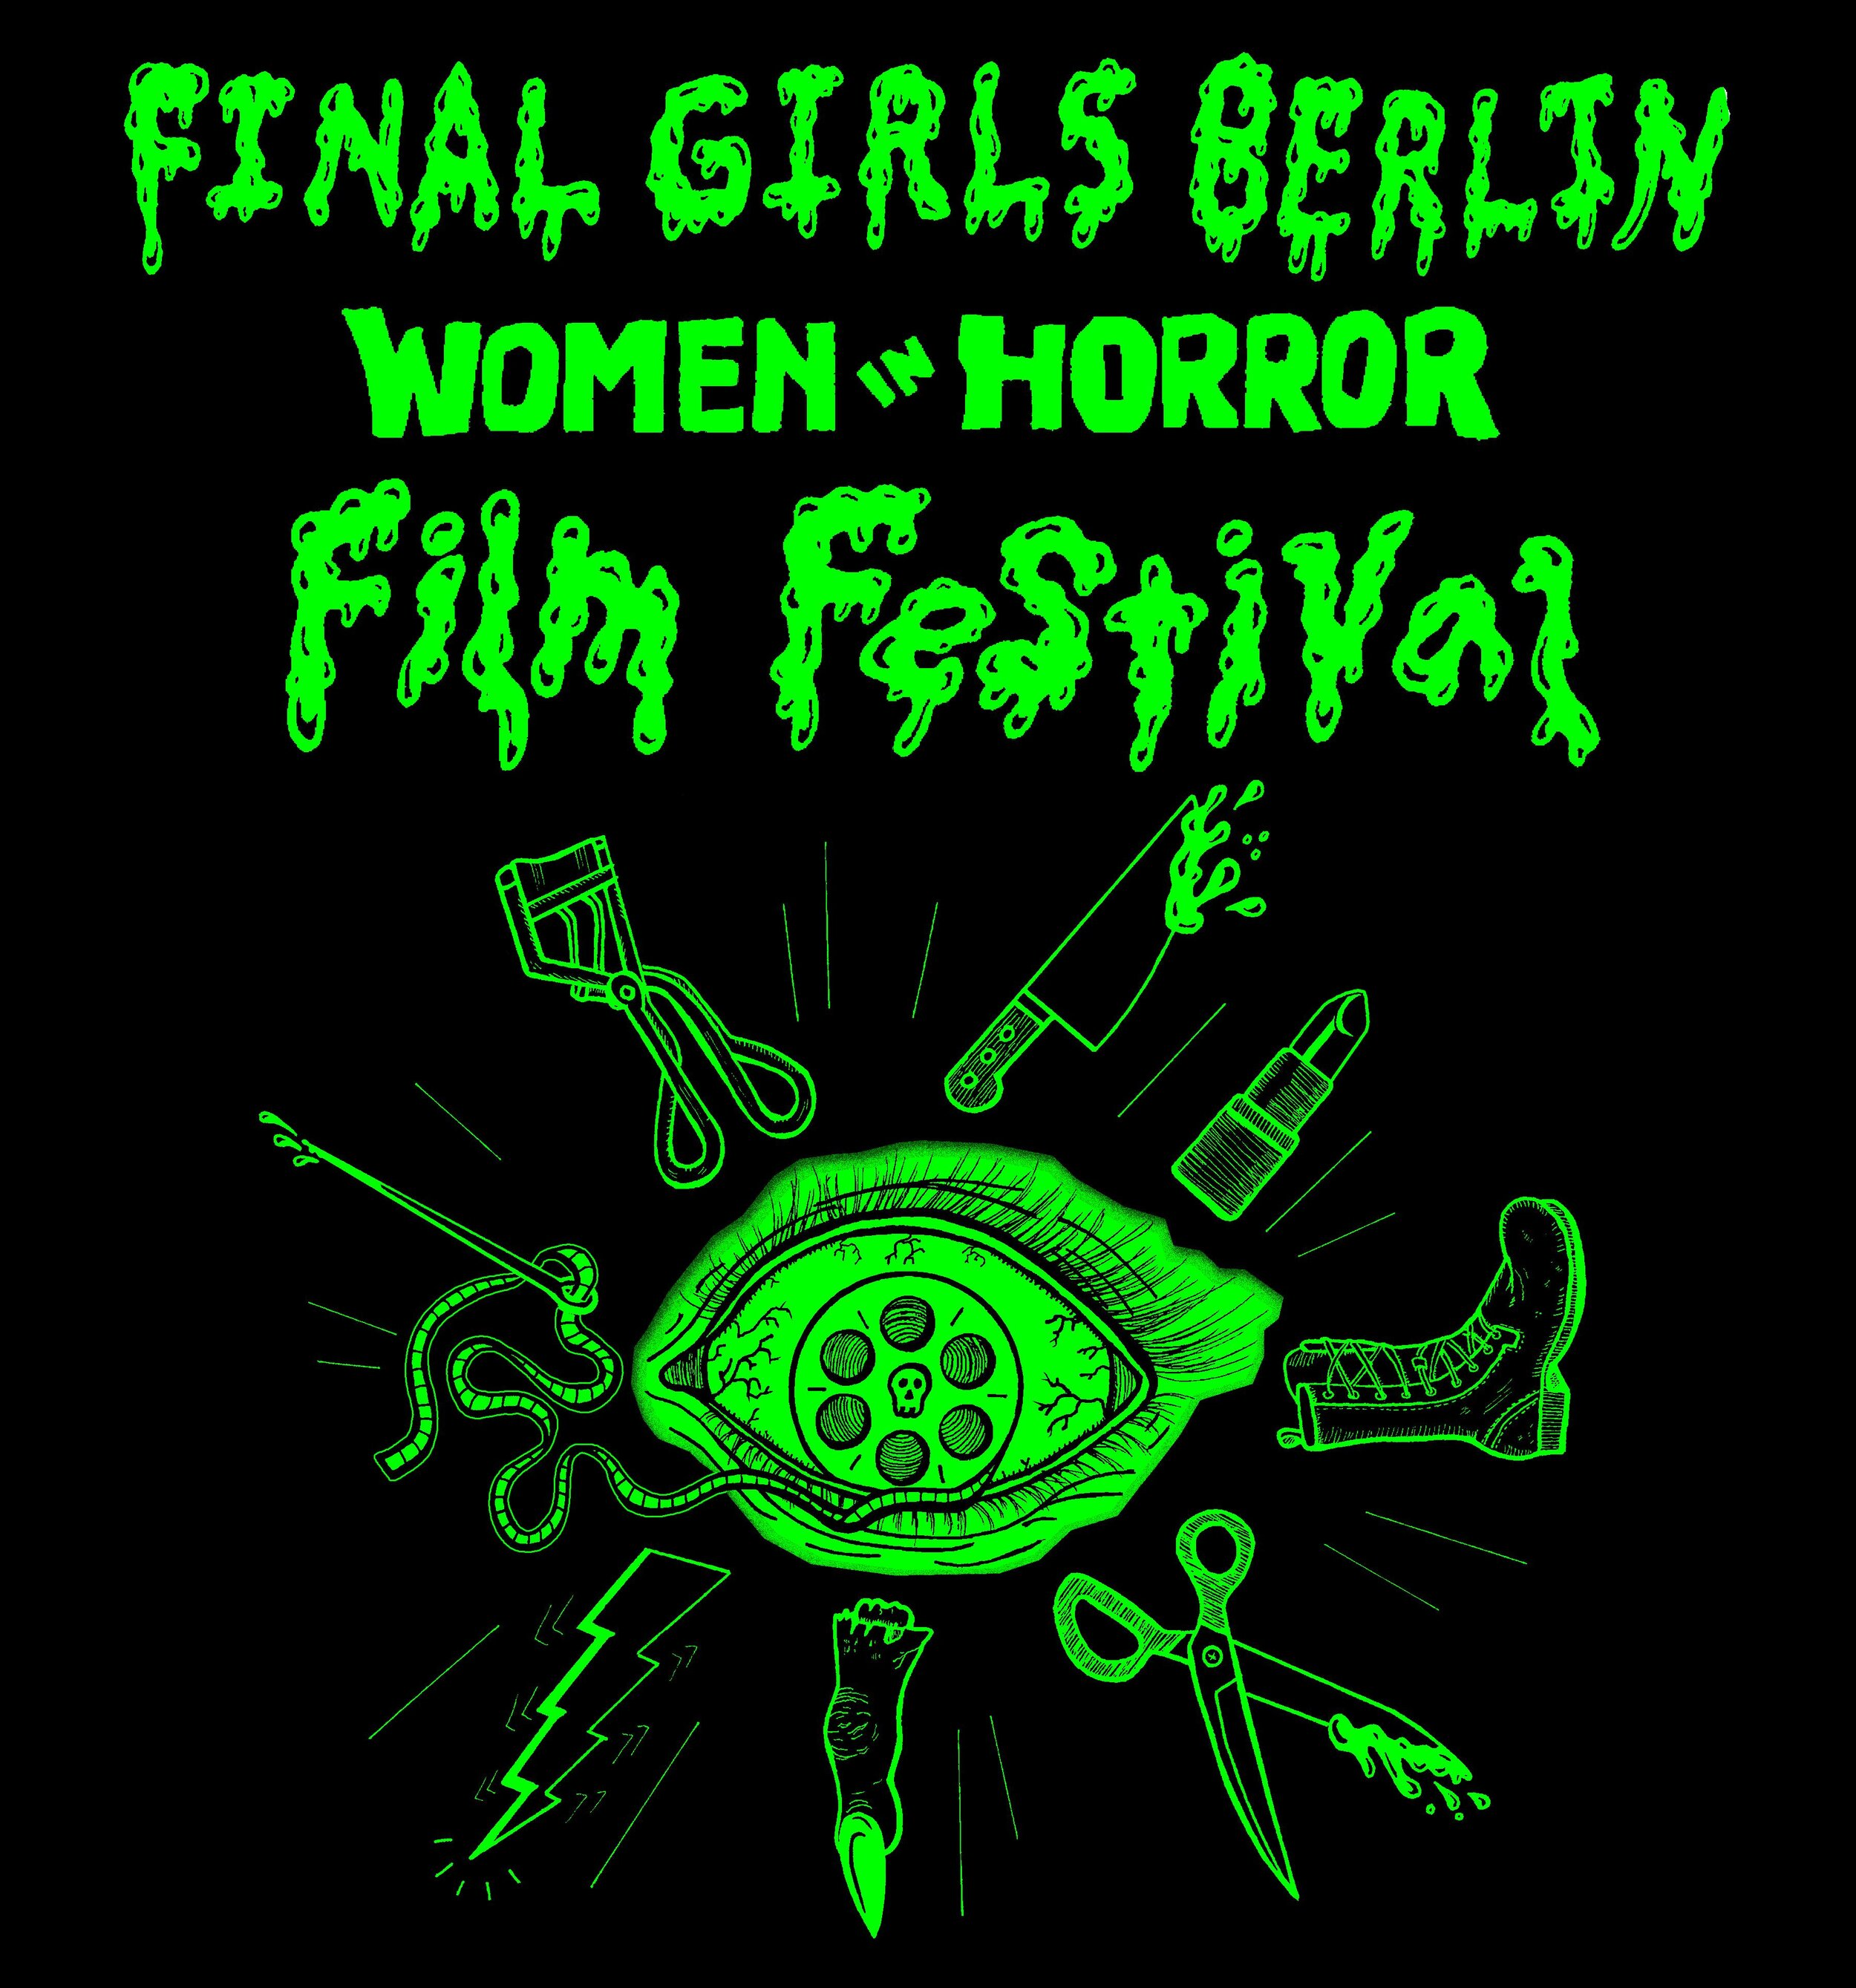 final-girls-june-festival-design-final-green-on-black-no-date-page-001.jpg